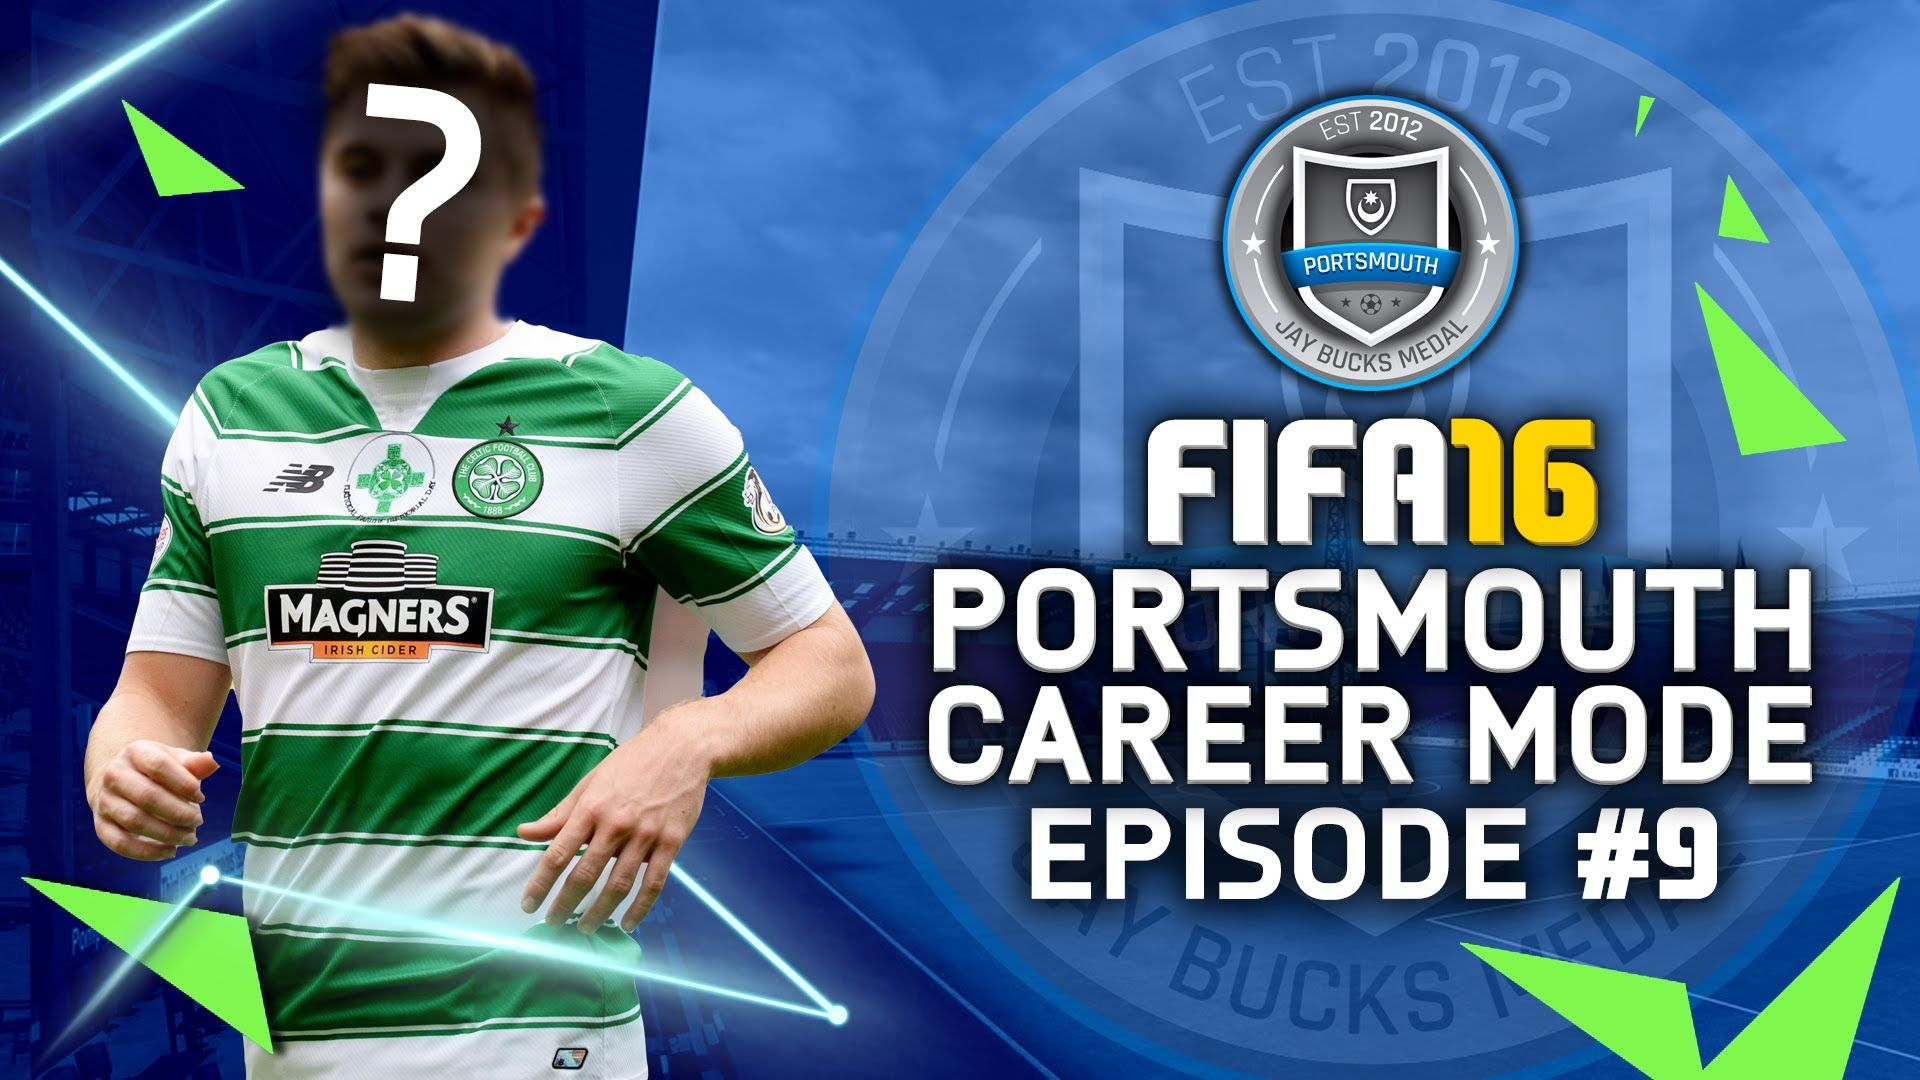 FIFA 16 | Portsmouth Career Mode #9 - MORE HUGE SIGNINGS!!! #JayBucksRTG...